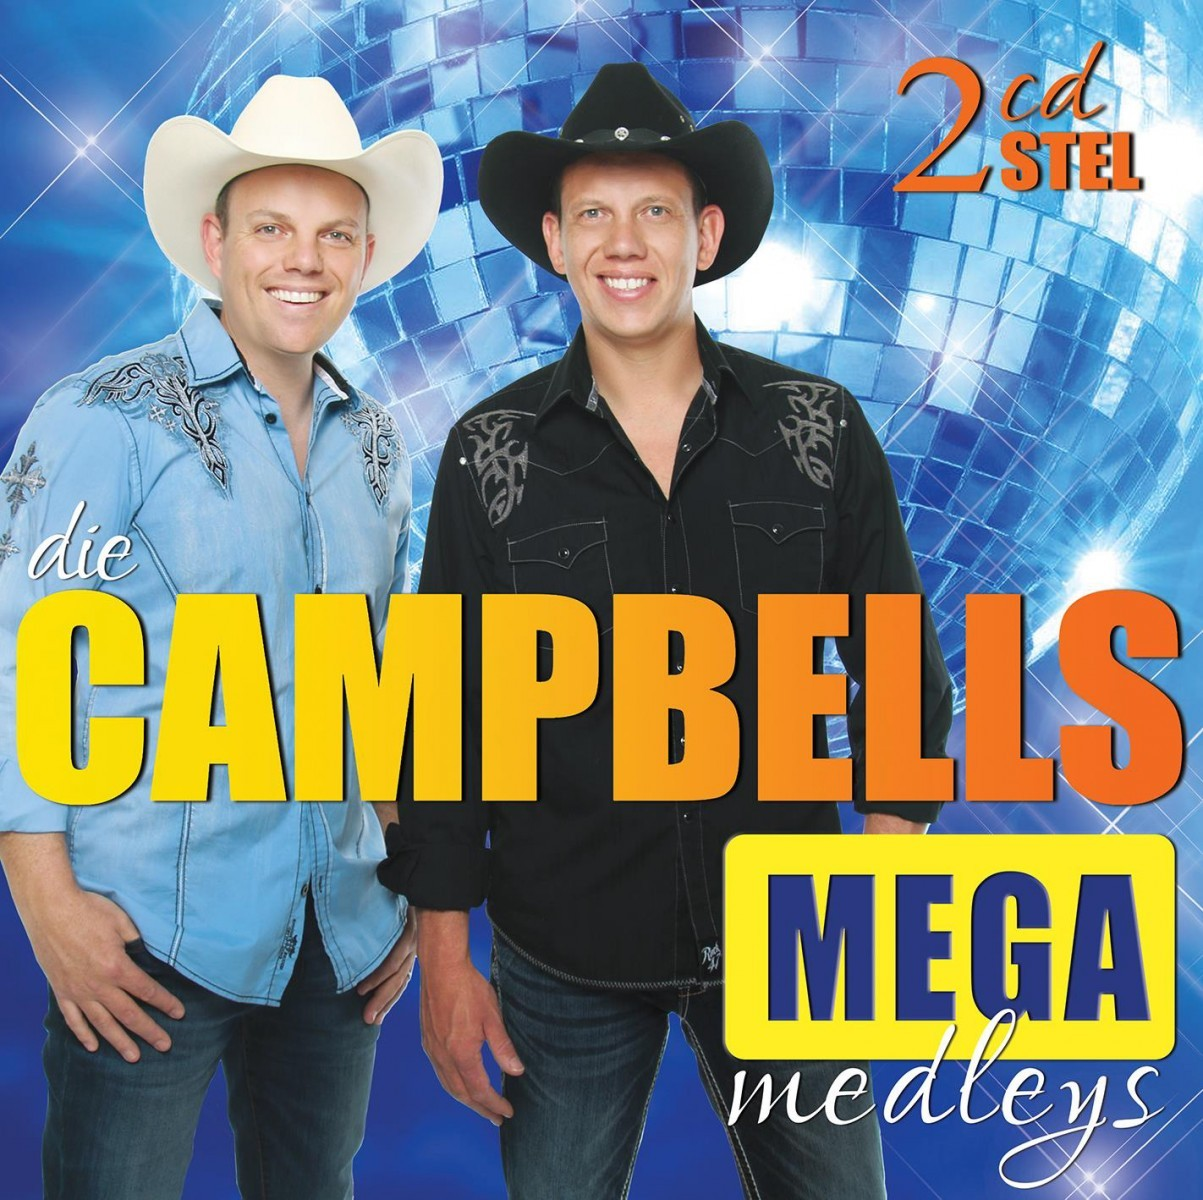 Die Campbells - Mega Medleys CD - CAMP005